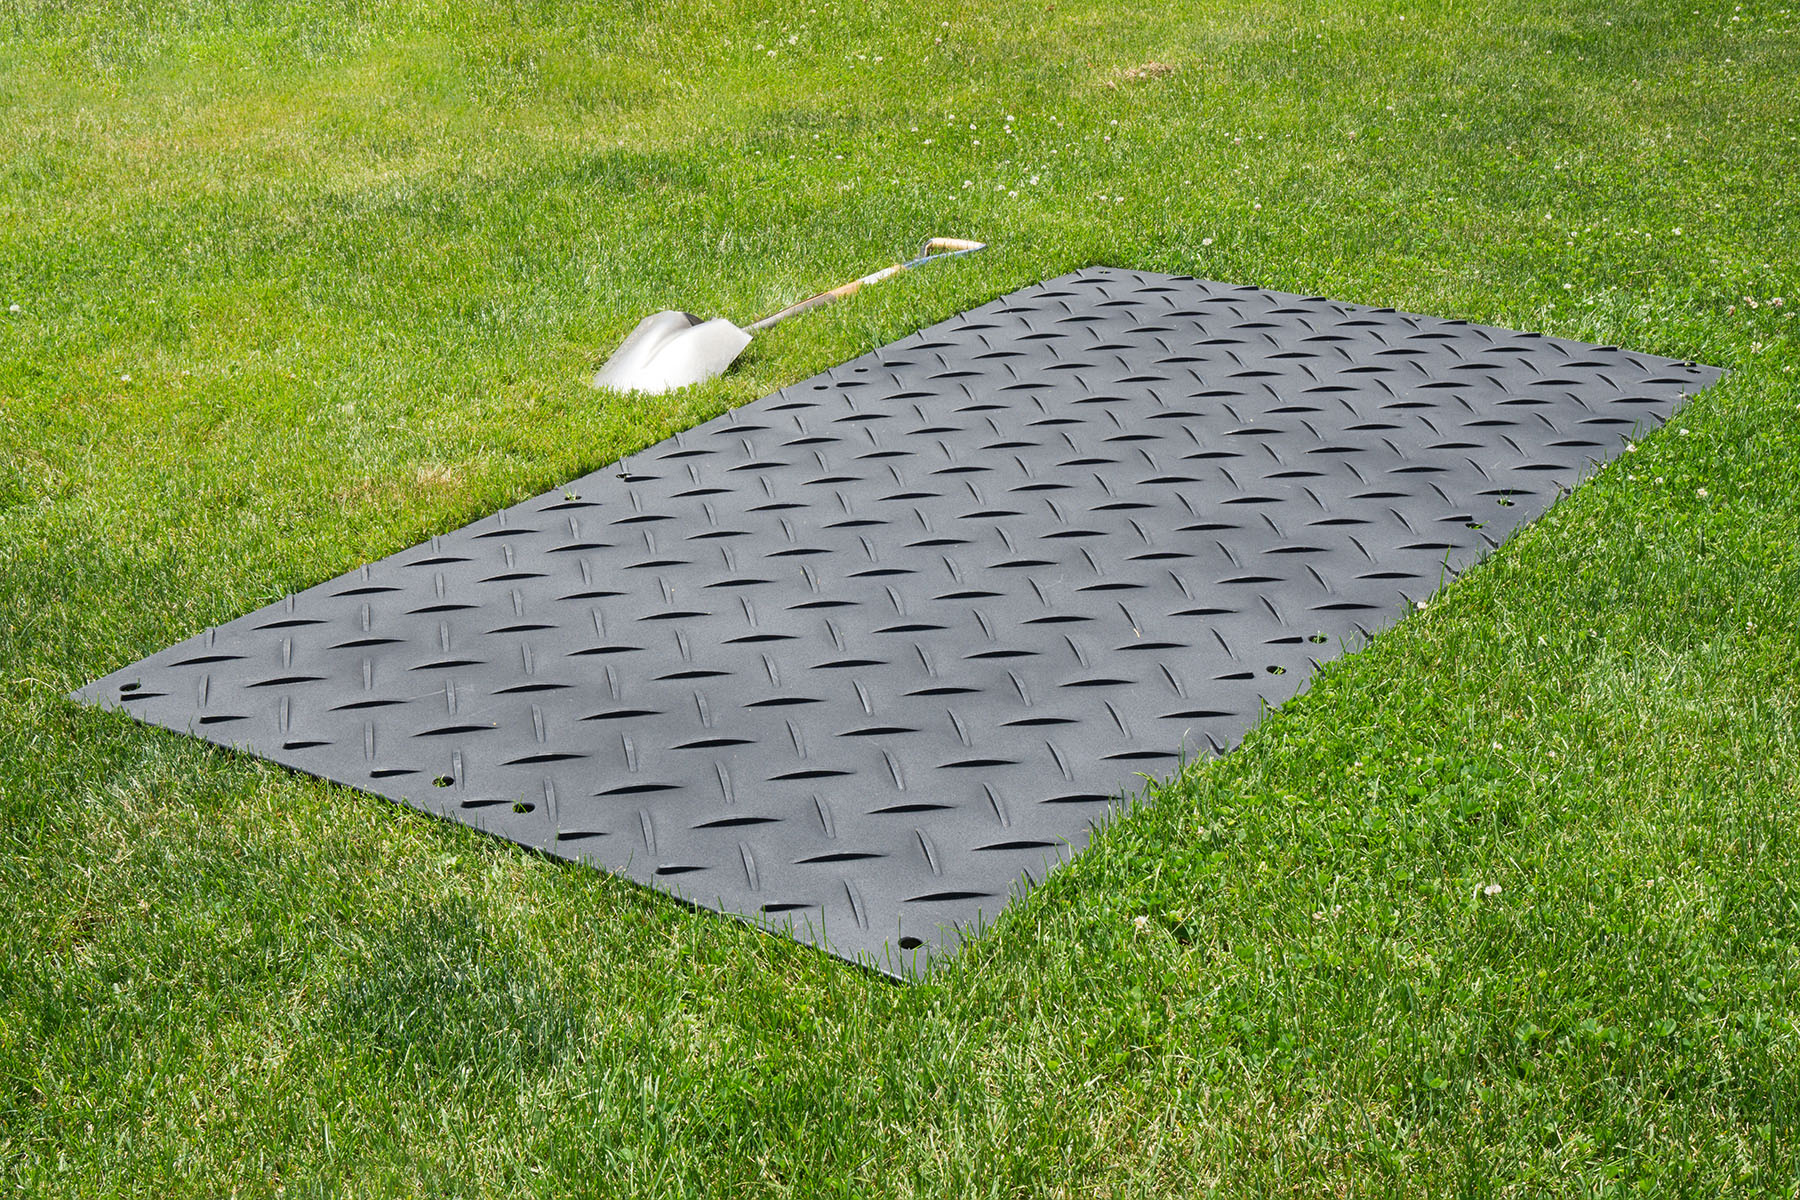 Ground Protection Mats. These rugged ground protection mats make the going easy when you need to move heavy vehicles and equipment over soft or muddy ground.